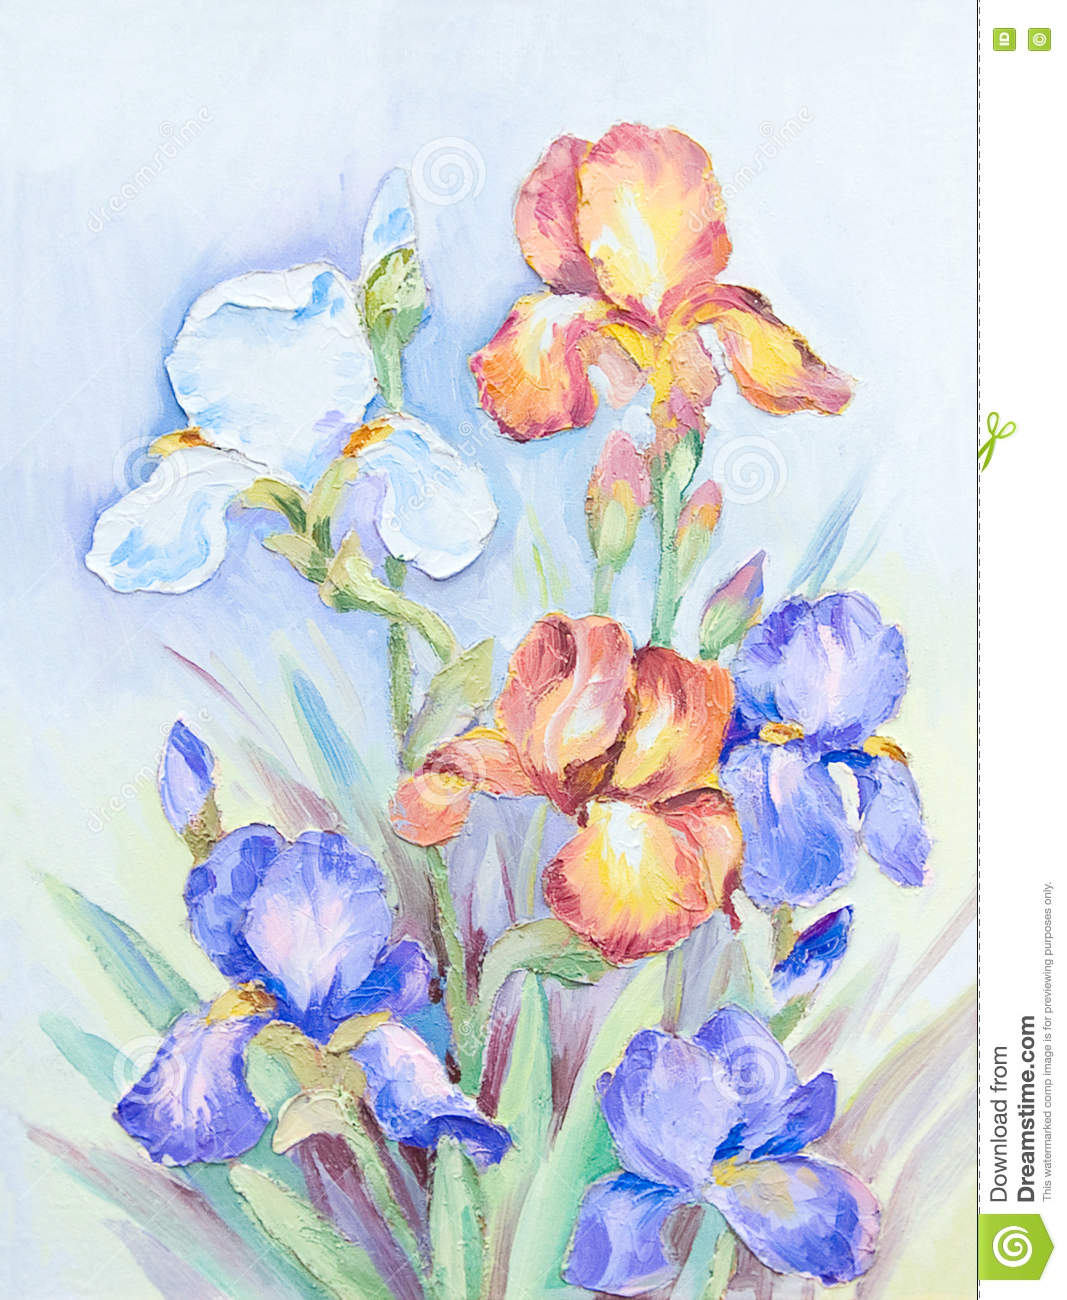 Oil Painting A Bouquet Of Irises On An Abstract Background Stock